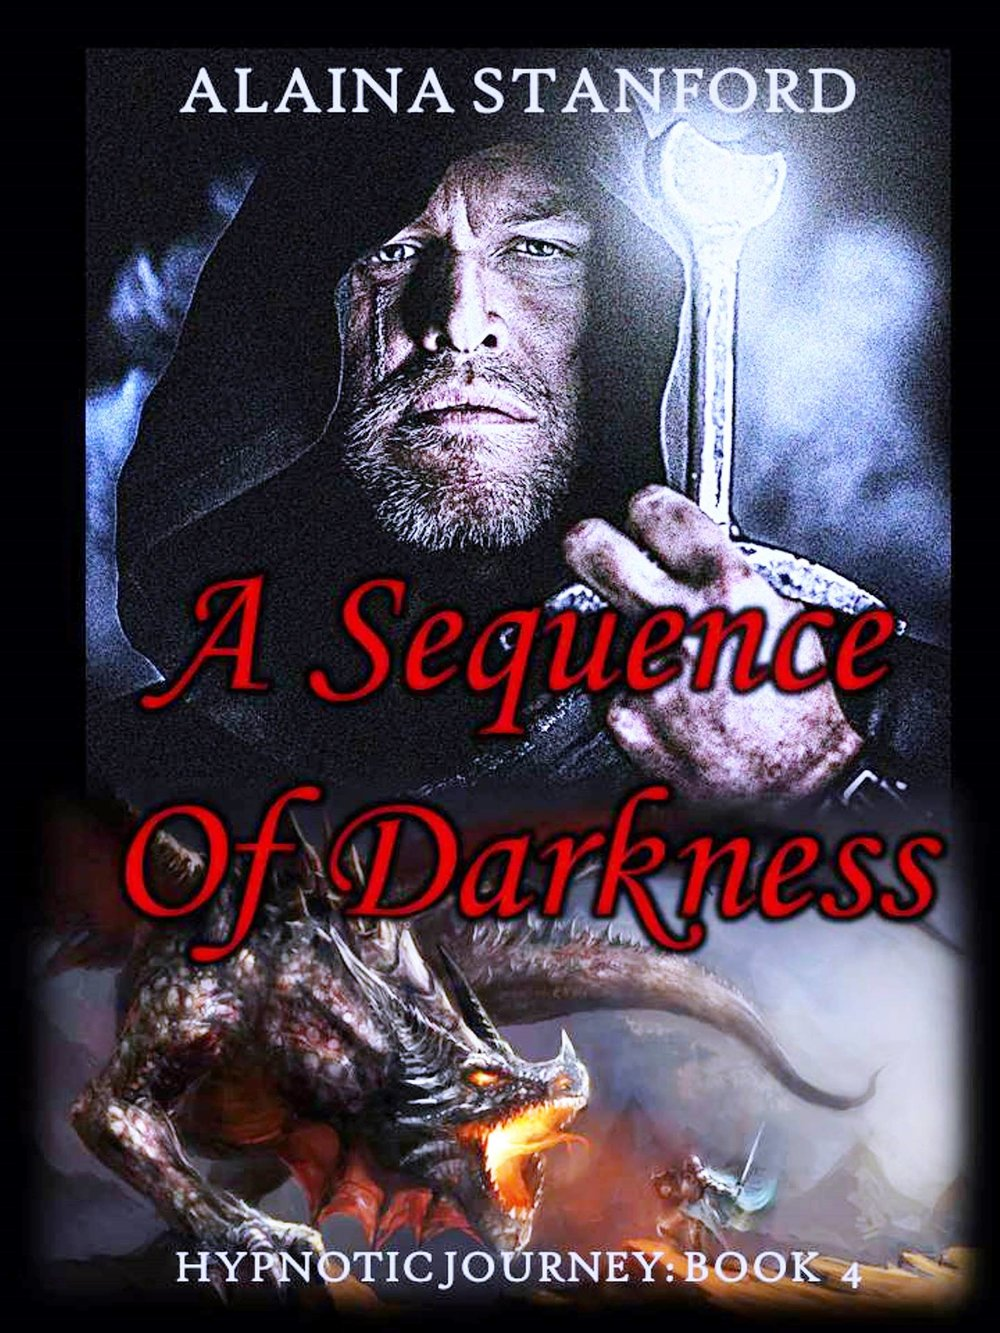 A Sequence of Darkness, Book 4  A paranormal adventure that takes place in utter darkness!   As they race to save two children abducted by renegade Trolls, the adventurers struggle with inner demons that threaten the ENTIRE TEAMS survival.   Threat of war looms over the Elven realm. An Elf child and an infant Troll are kidnapped by renegade Trolls. Our heroes rush to stop the Elves before they invade the Trolls' tunnel system and spark the fires of war. Together the adventurers travel into the bowels of the earth, to the Netherworld.  The birthplace of all monsters. Their greatest chance of survival desperately depends on the two netherbeasts that accompany them.  As darkness closes in, will the team survive the horrors of the netherworld long enough to find the missing children? Will their heightened emotions tear the team apart, endangering all their lives? Will the two beasts they call friend on the surface remain their allies once the seductive blackness of the netherworld closes in around them? Traveling the netherworld comes at a cost. Who will pay the price?